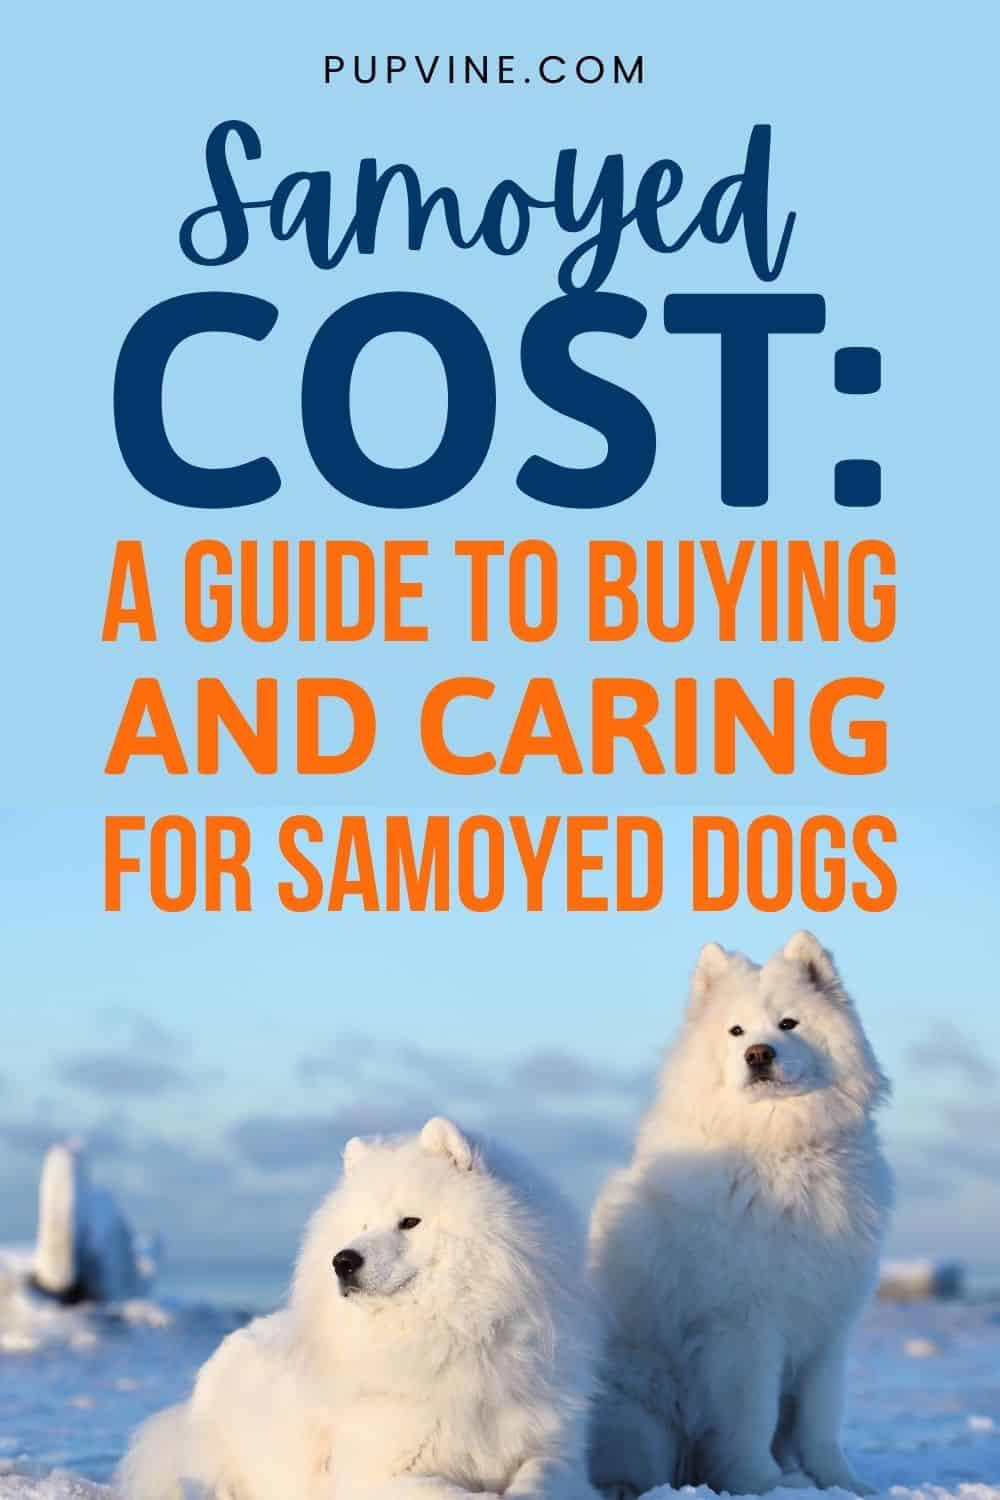 Samoyed Cost A Guide To Buying And Caring For Samoyed Dogs